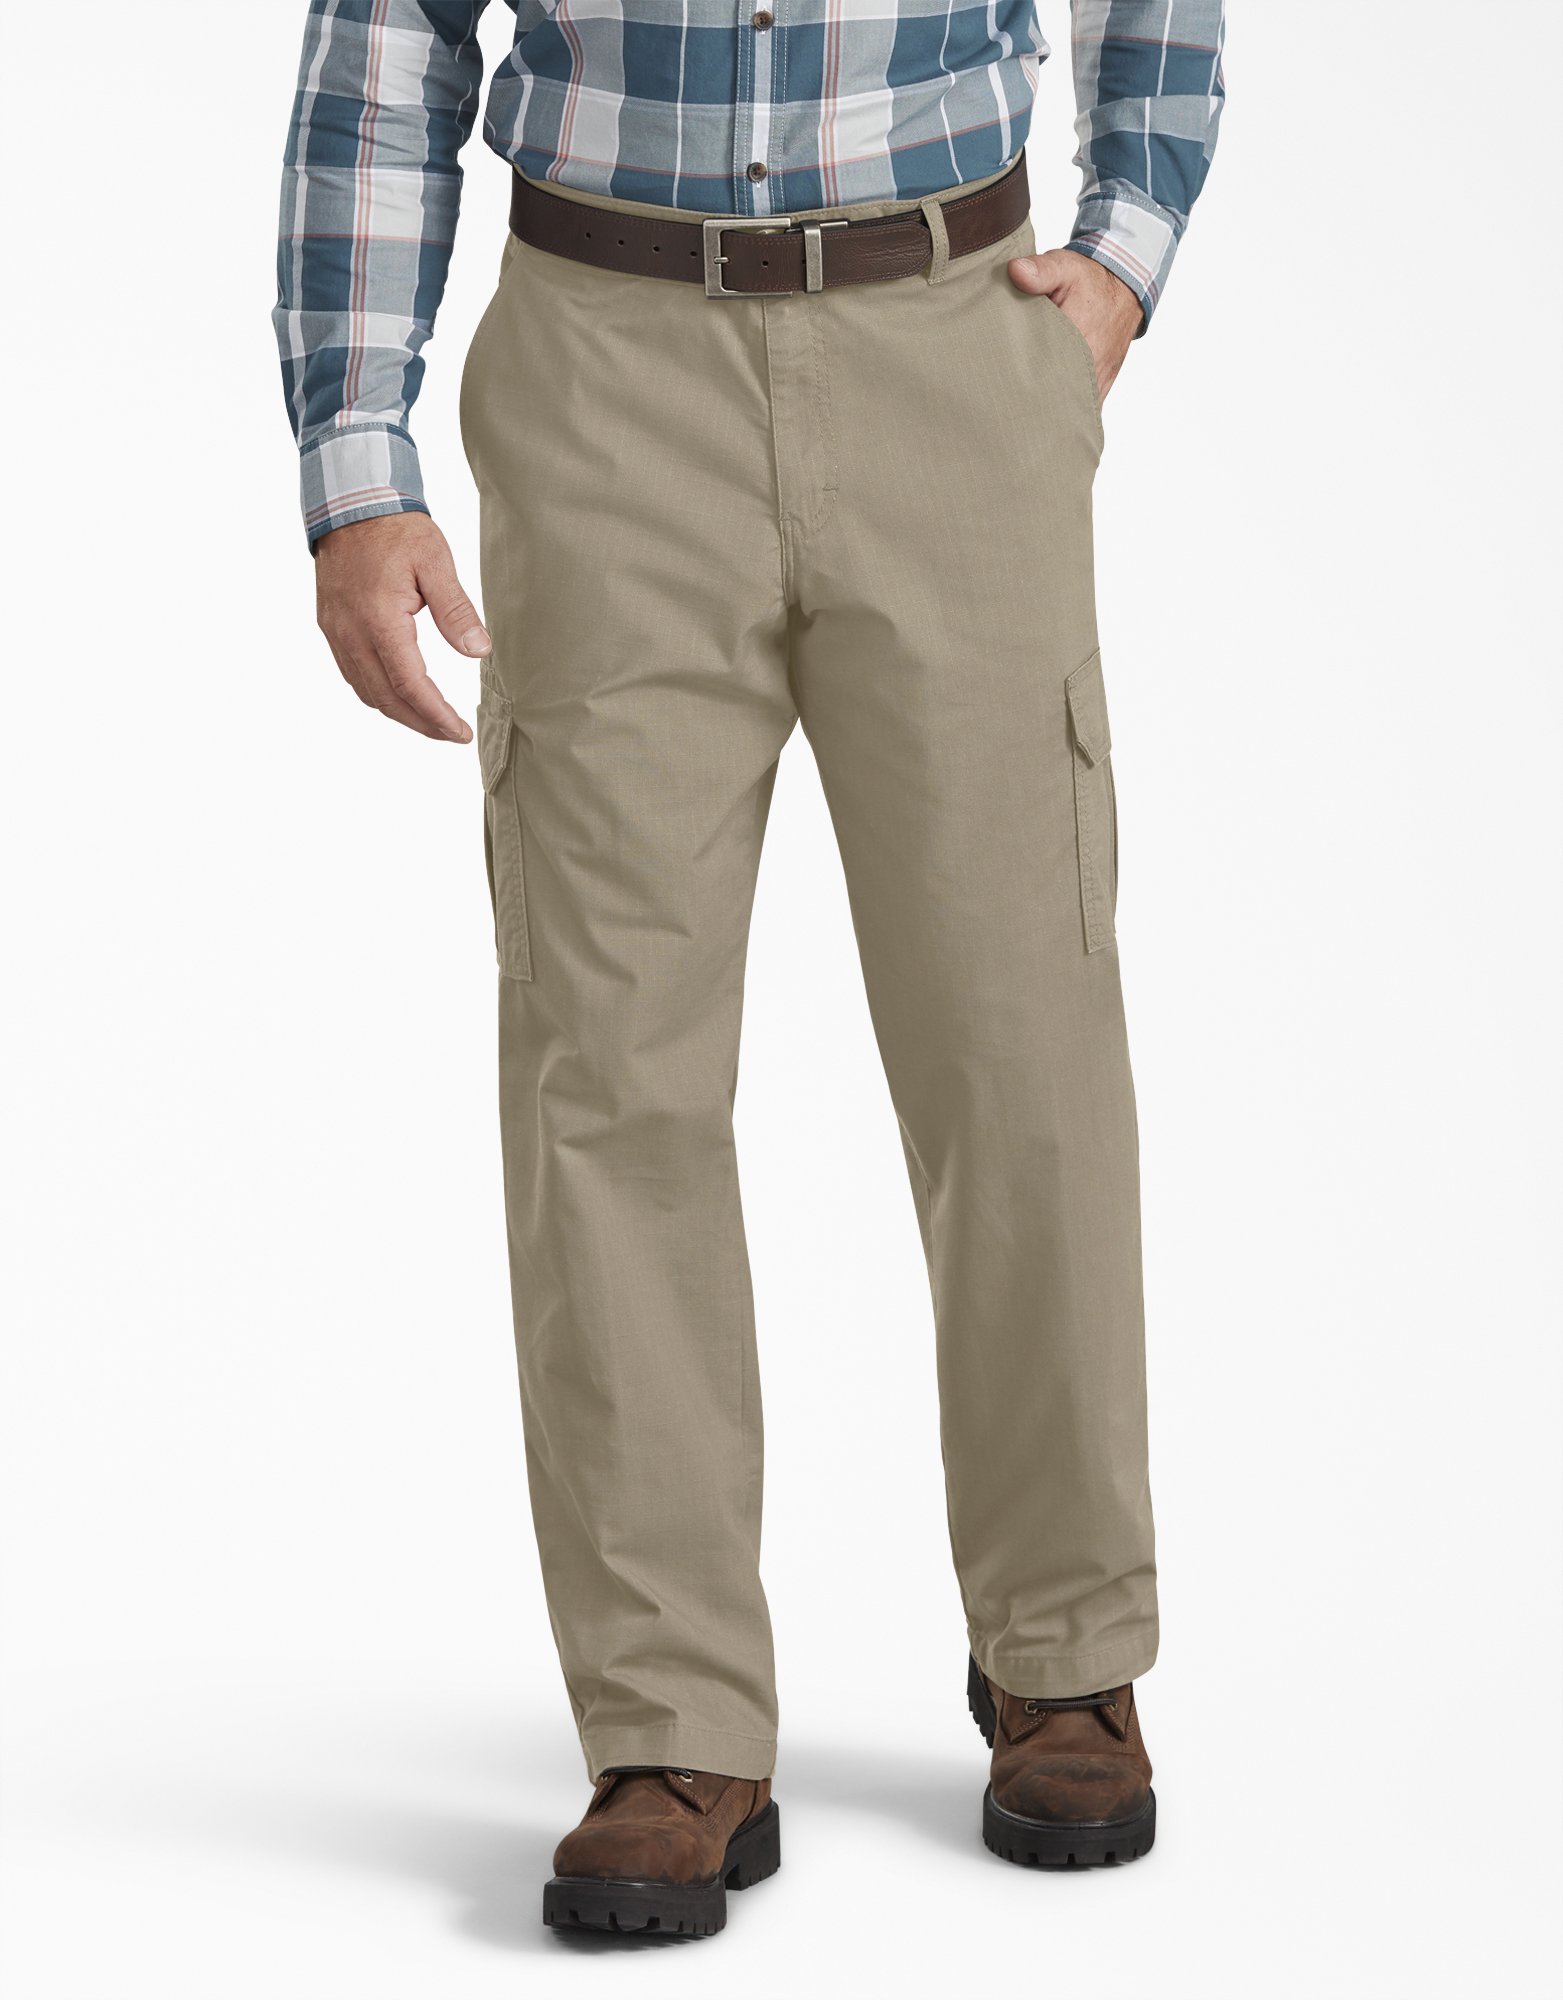 FLEX Regular Fit Ripstop Tough Max™ Cargo Pants - Desert Khaki (RDS)